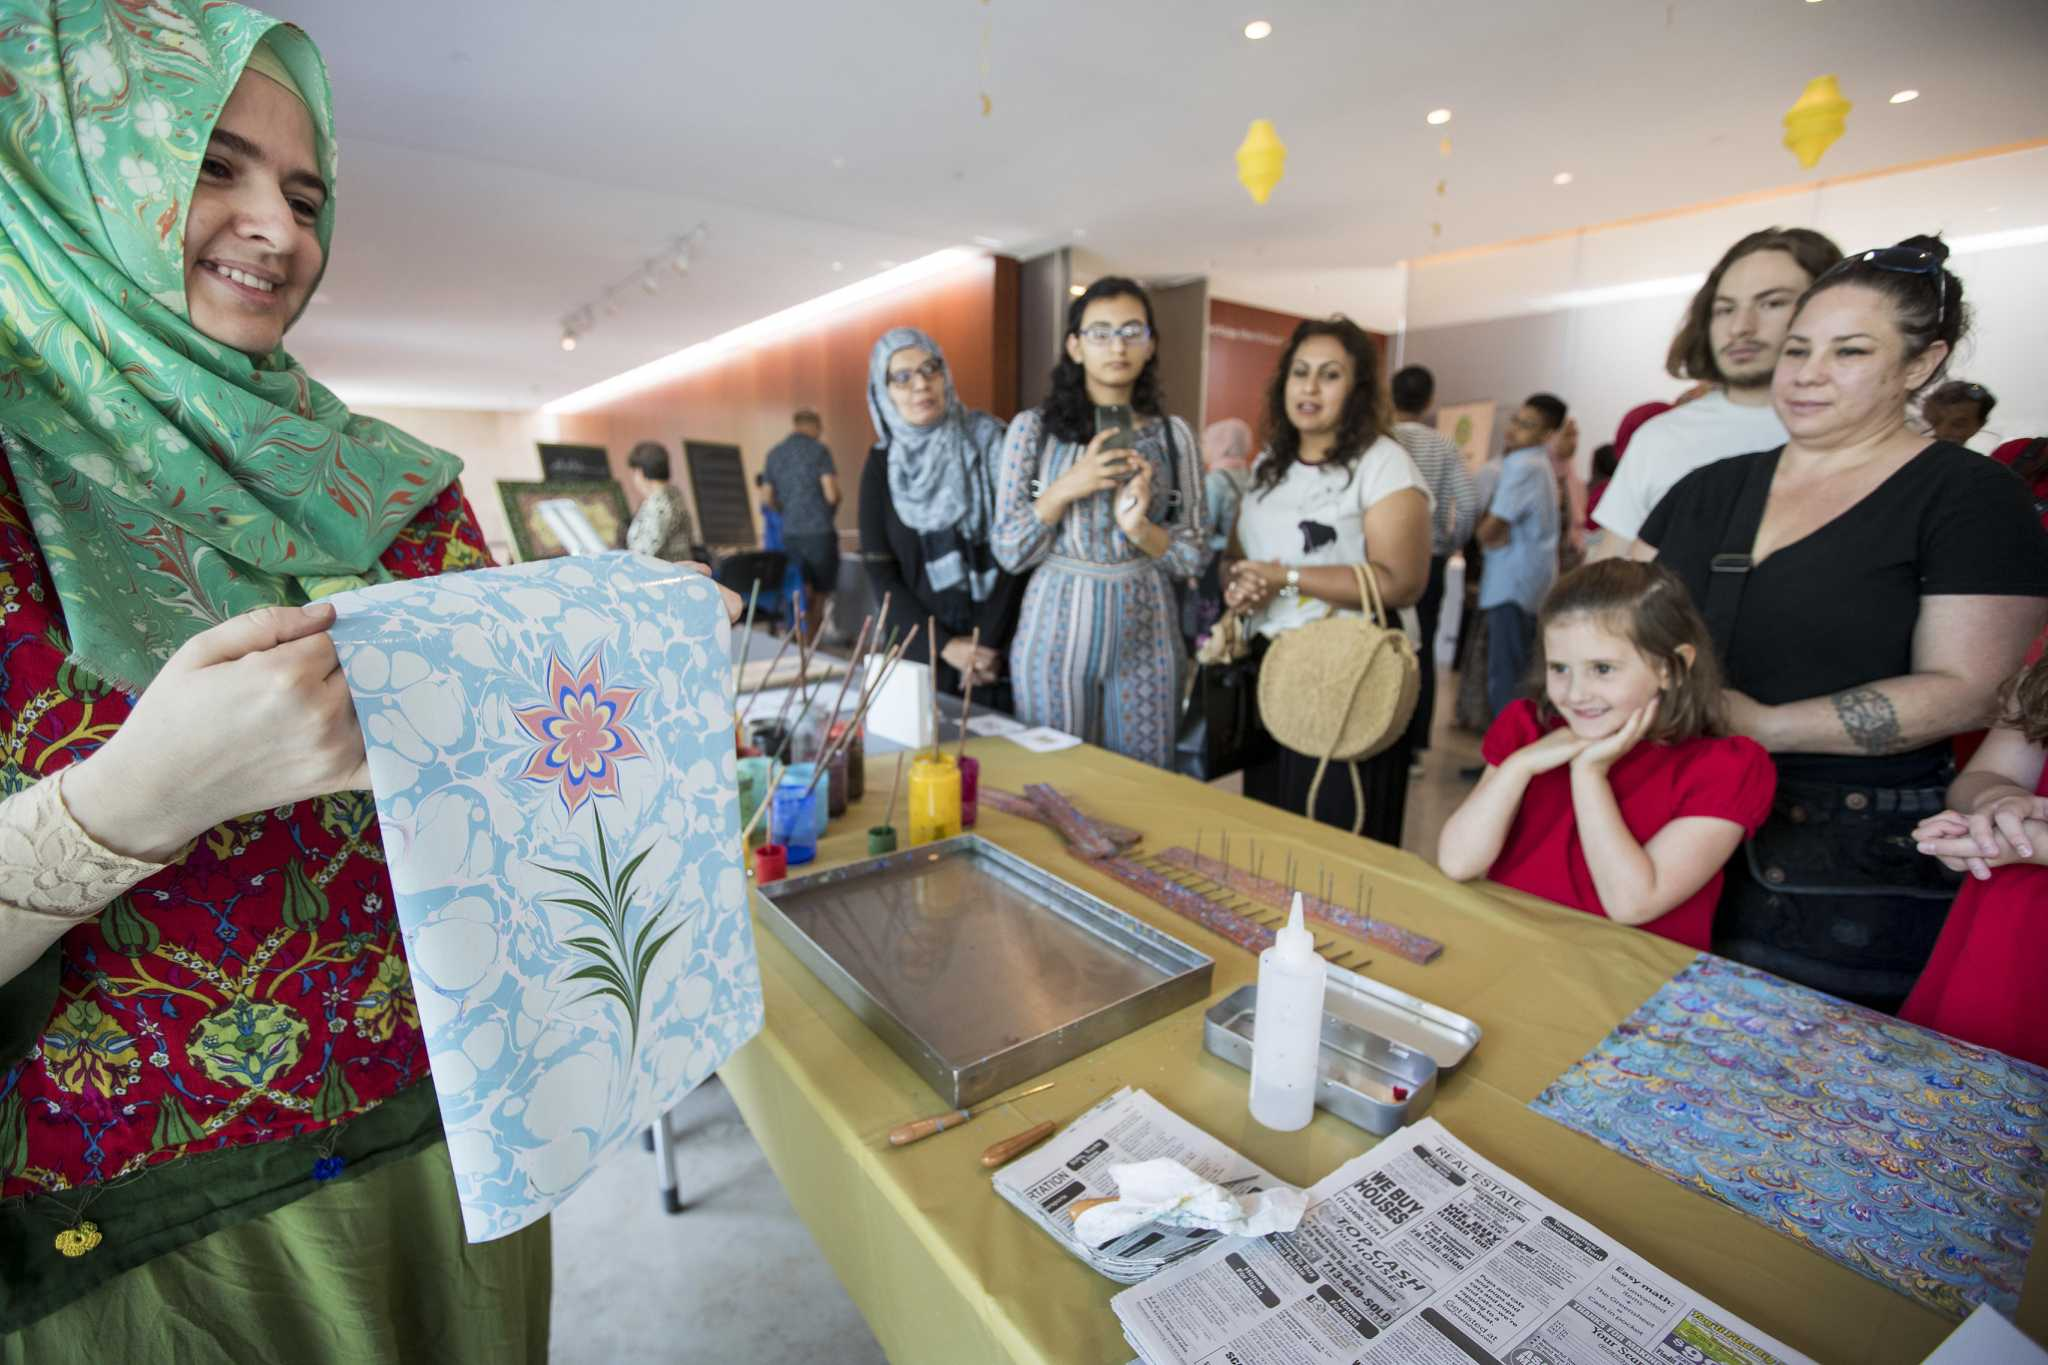 Cultures from around the world celebrate Ramadan's end at Asia Society